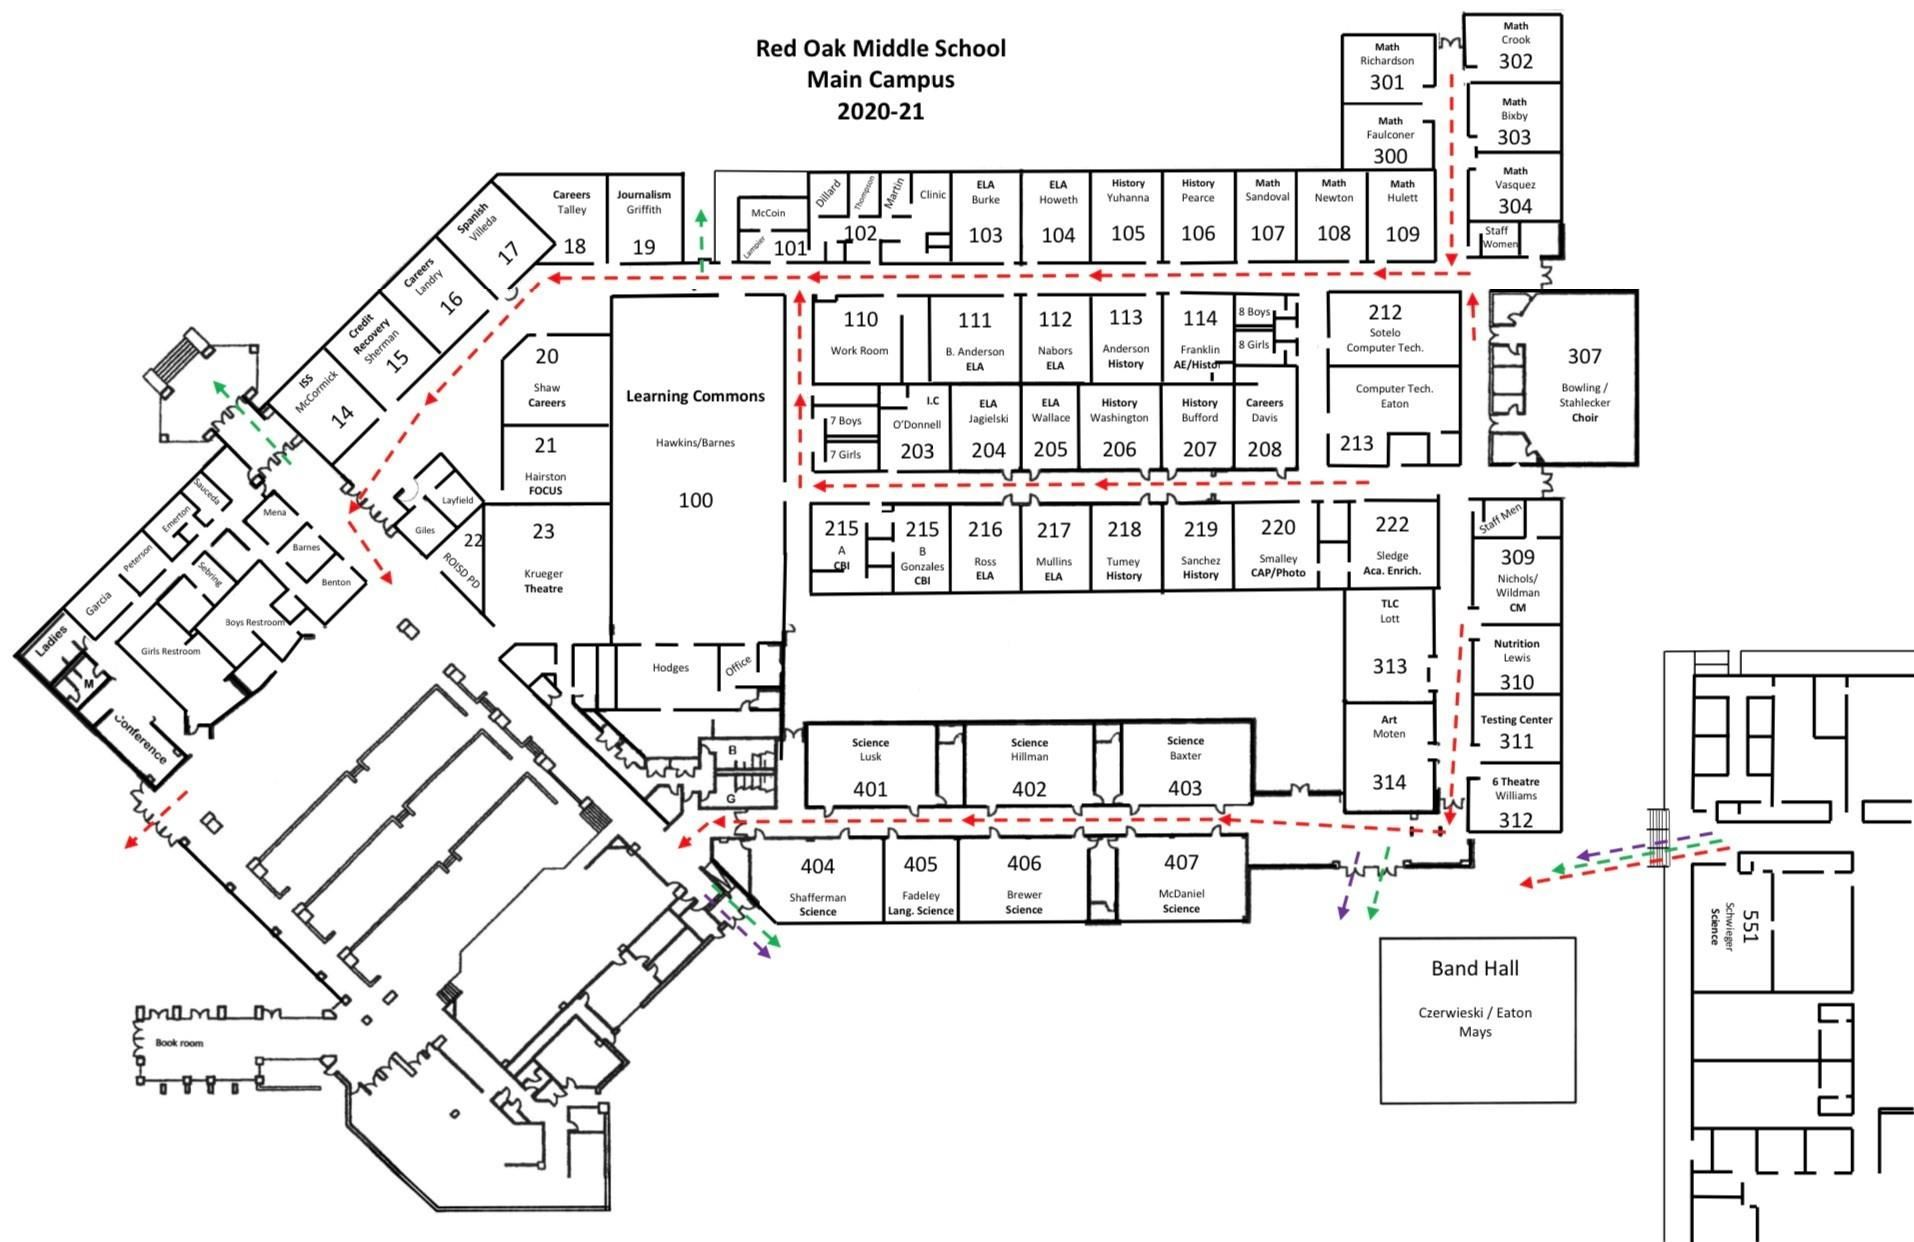 map of main campus showing designated hallways for dismissal procedures